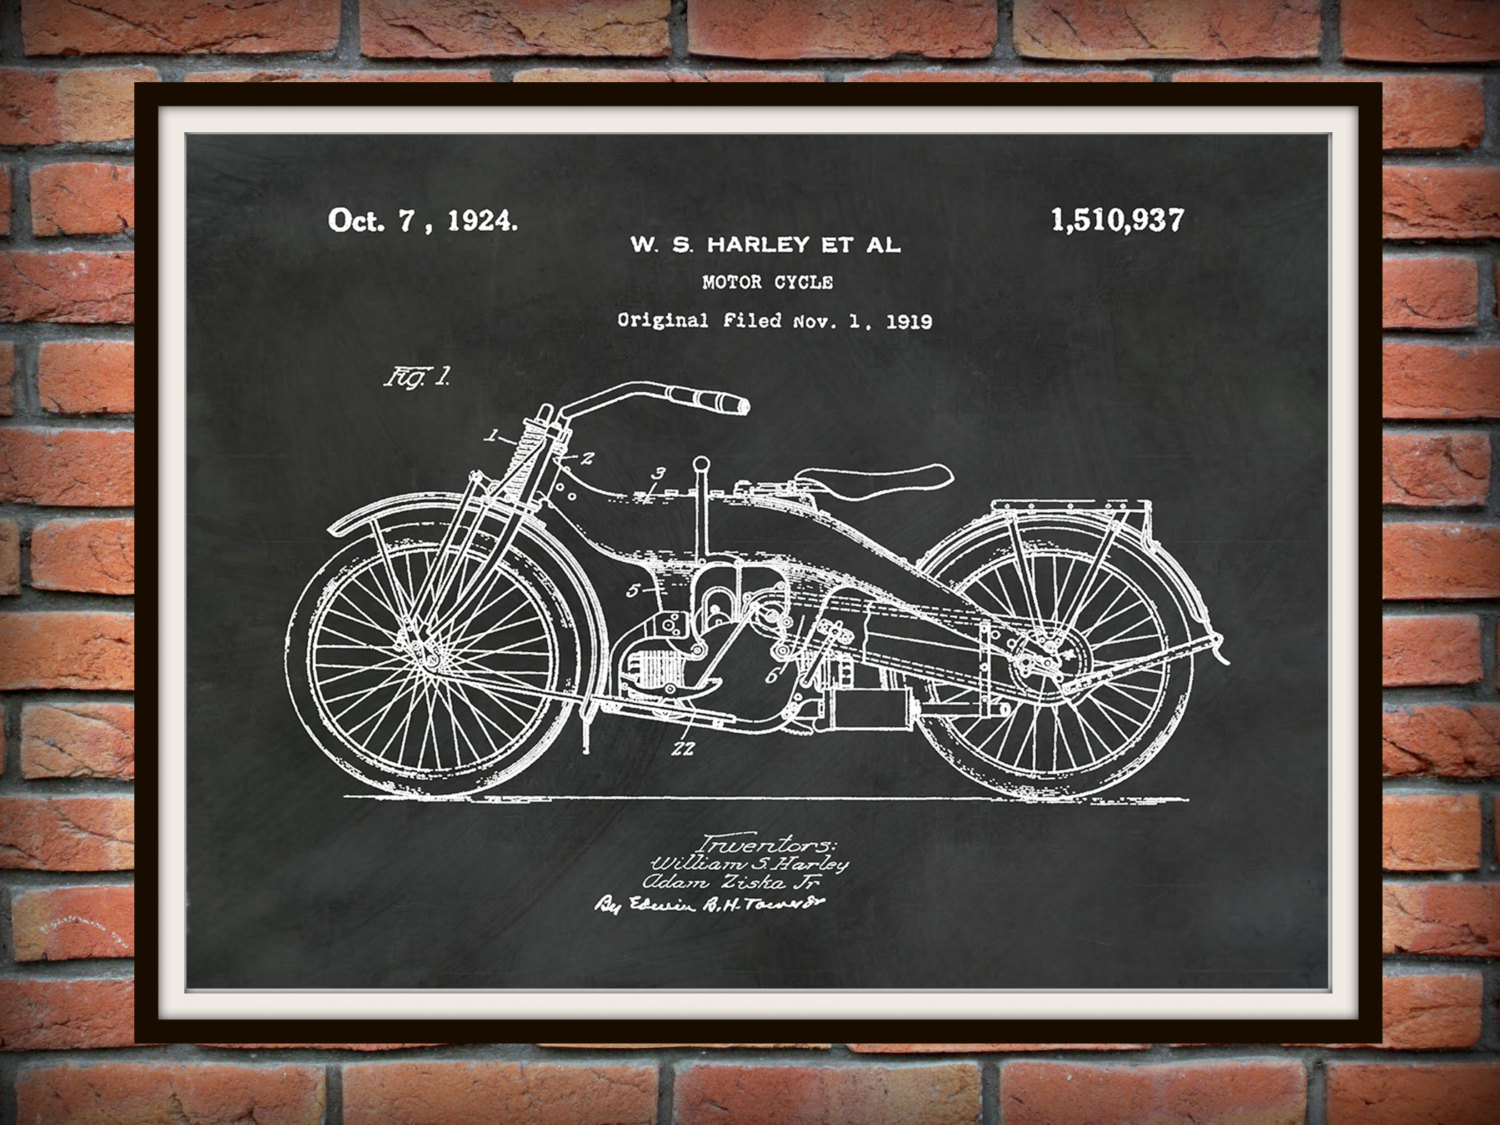 Drawn bike motor #11